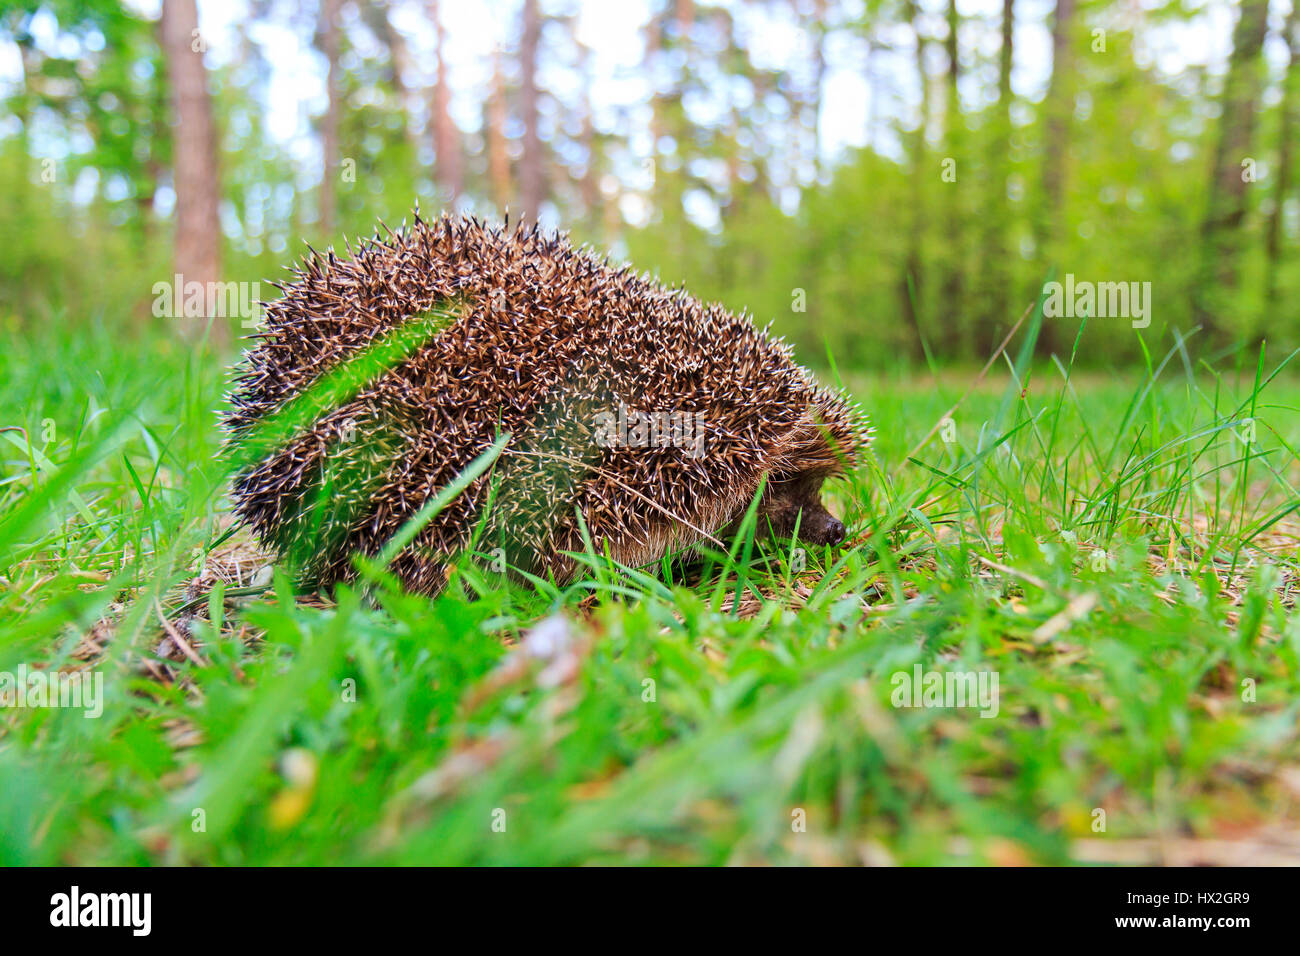 European hedgehog hiding among green grass,mammals, predator prickly animal complex, nocturnal animal, the animal - Stock Image